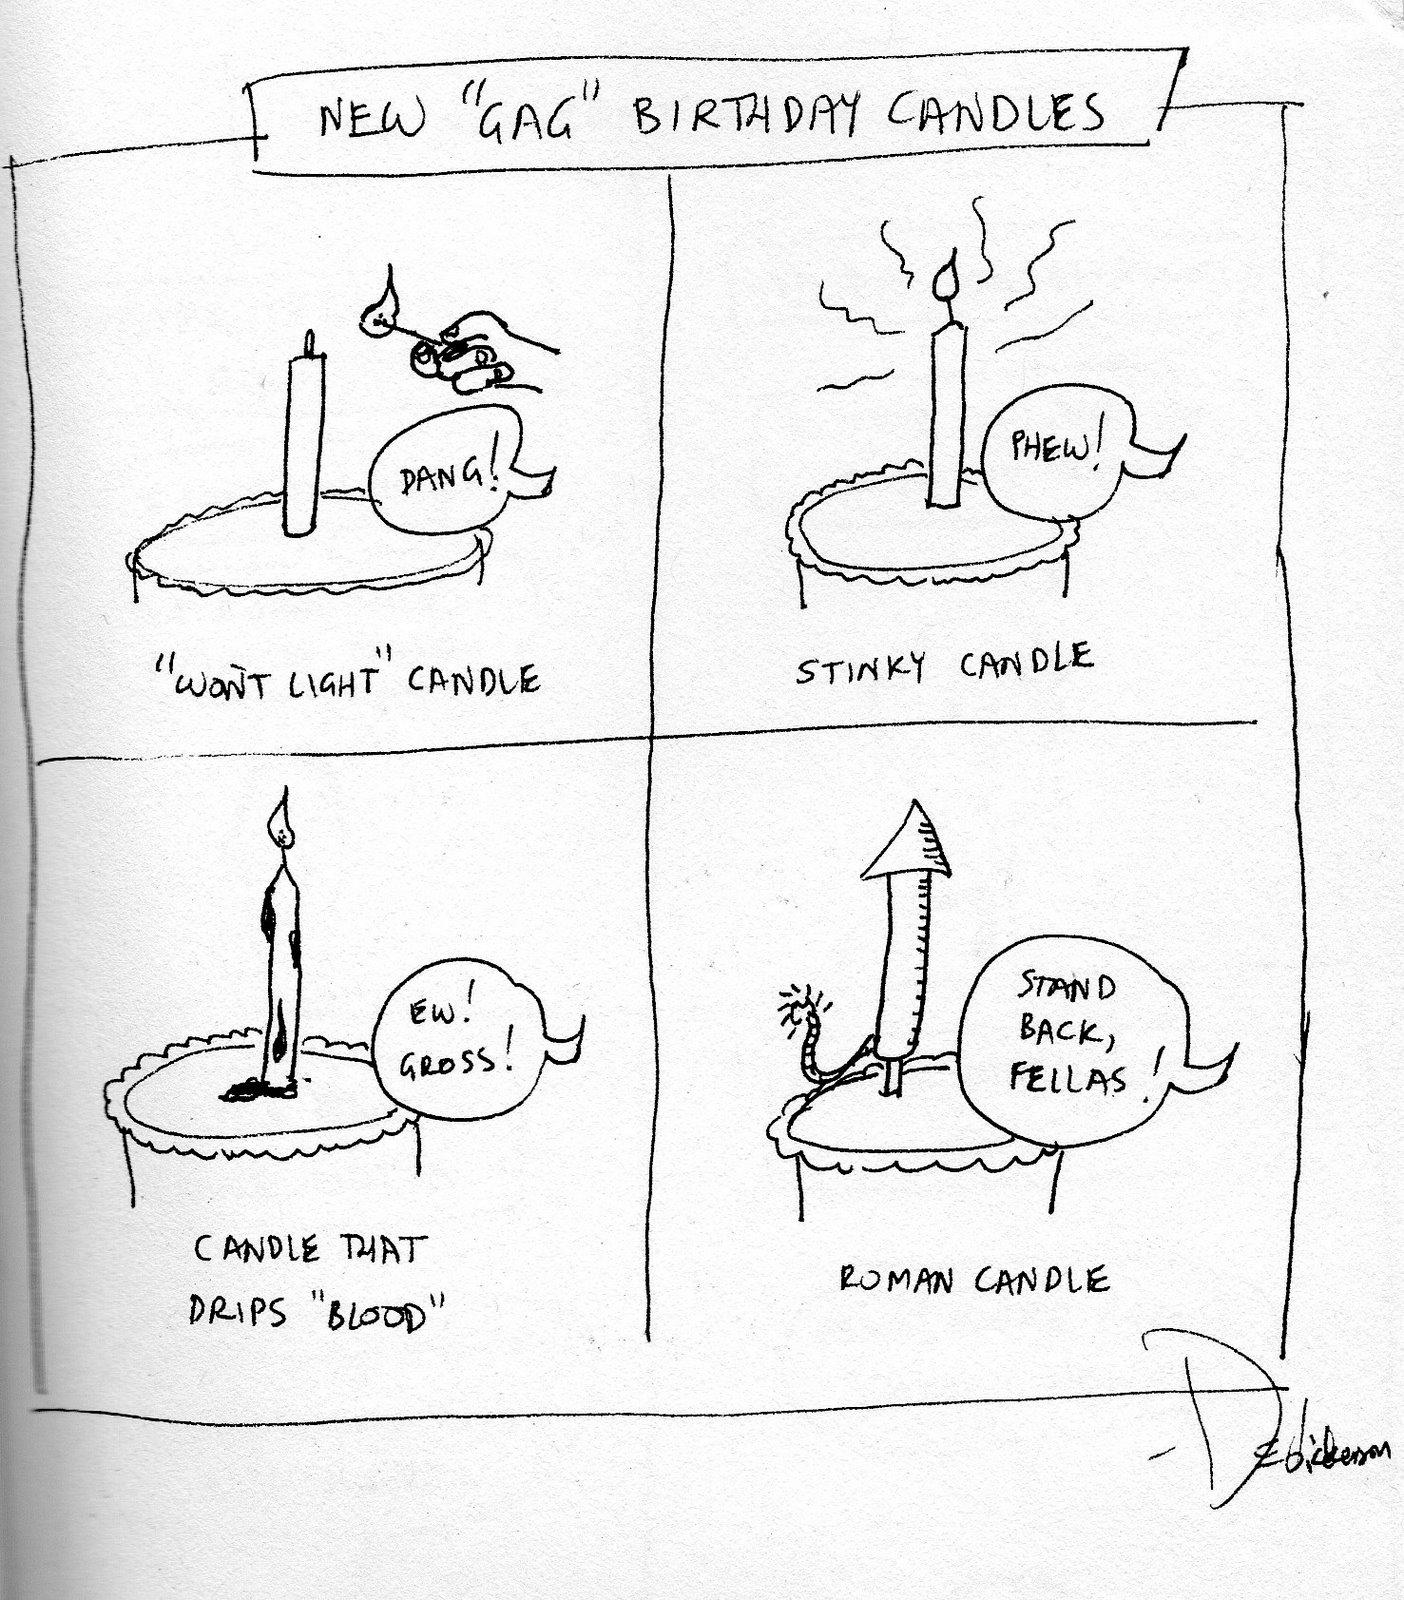 [gag+birthday+candles]